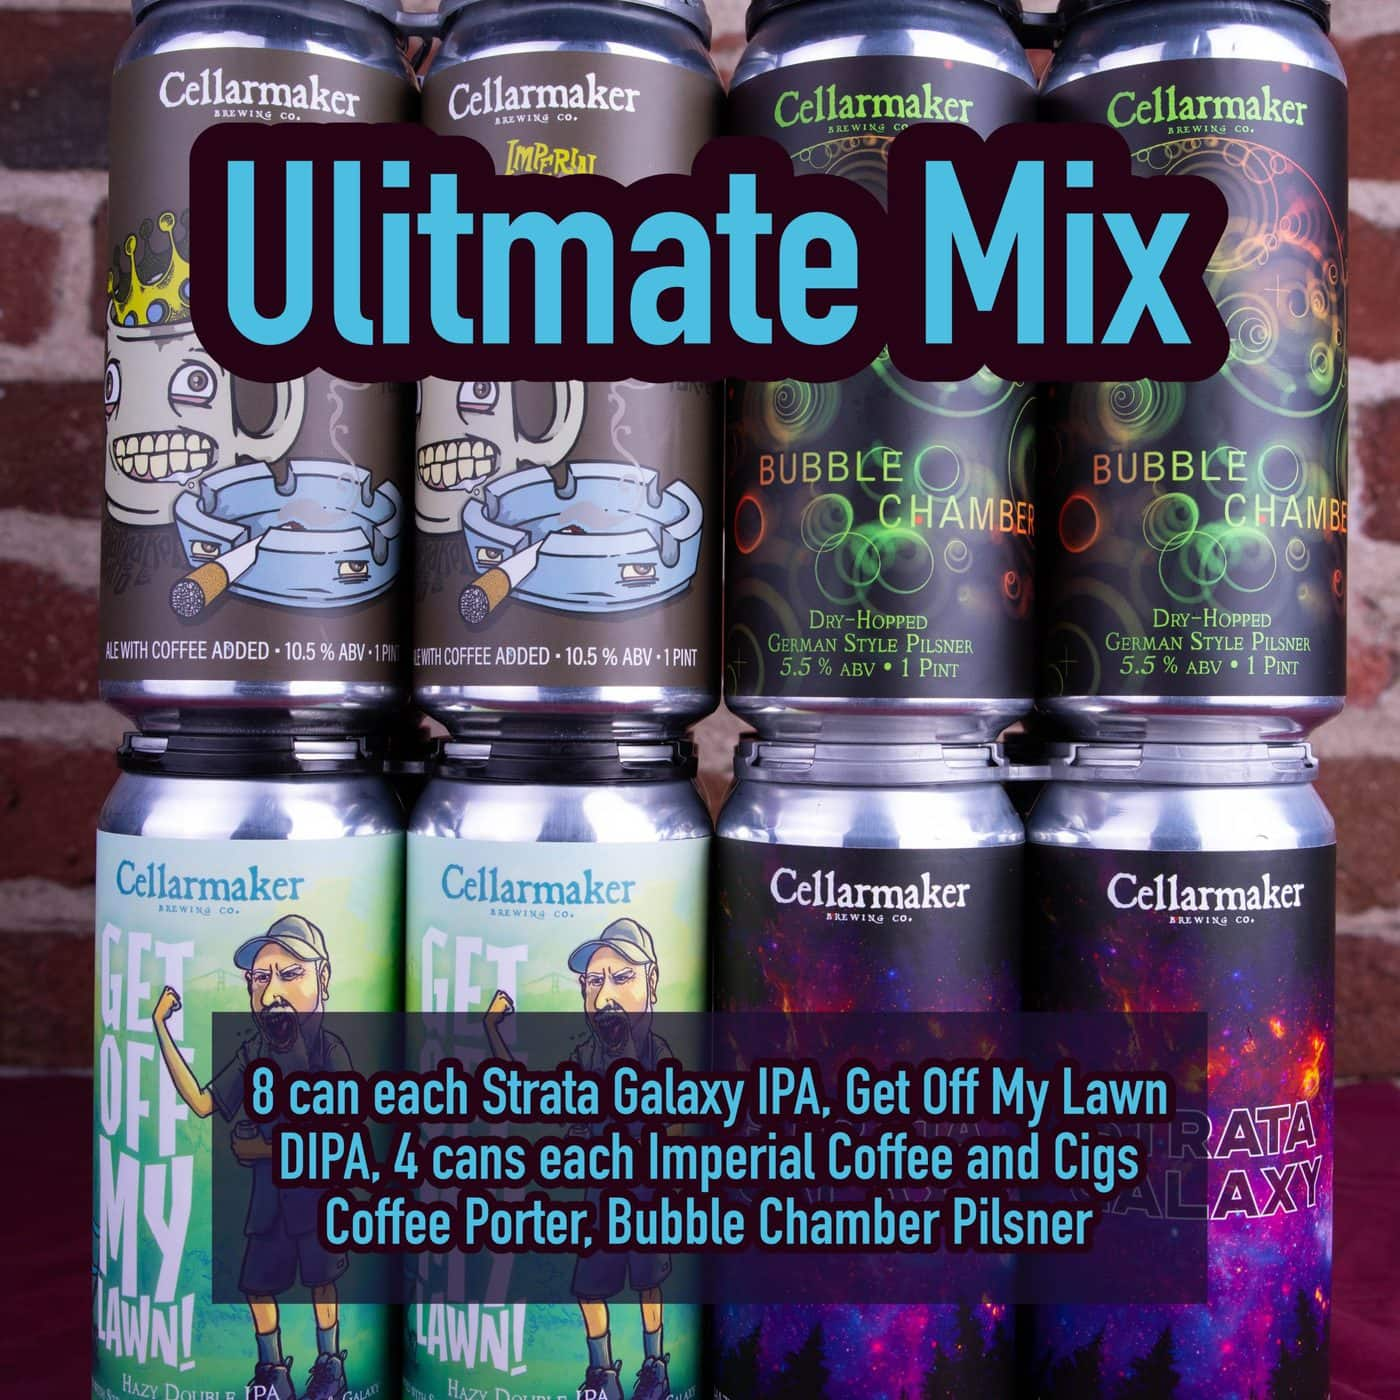 FULL CASE 24 CANS Ultimate MIX – 4 Bubble Chamber Pilsner, 8 Strata Galaxy IPA, 8 Get Off My Lawn Hazy DIPA And 4 Imperial Coffee And Cigarettes Porter – Shipping Out Tuesday 4/20 For Next Day Delivery*